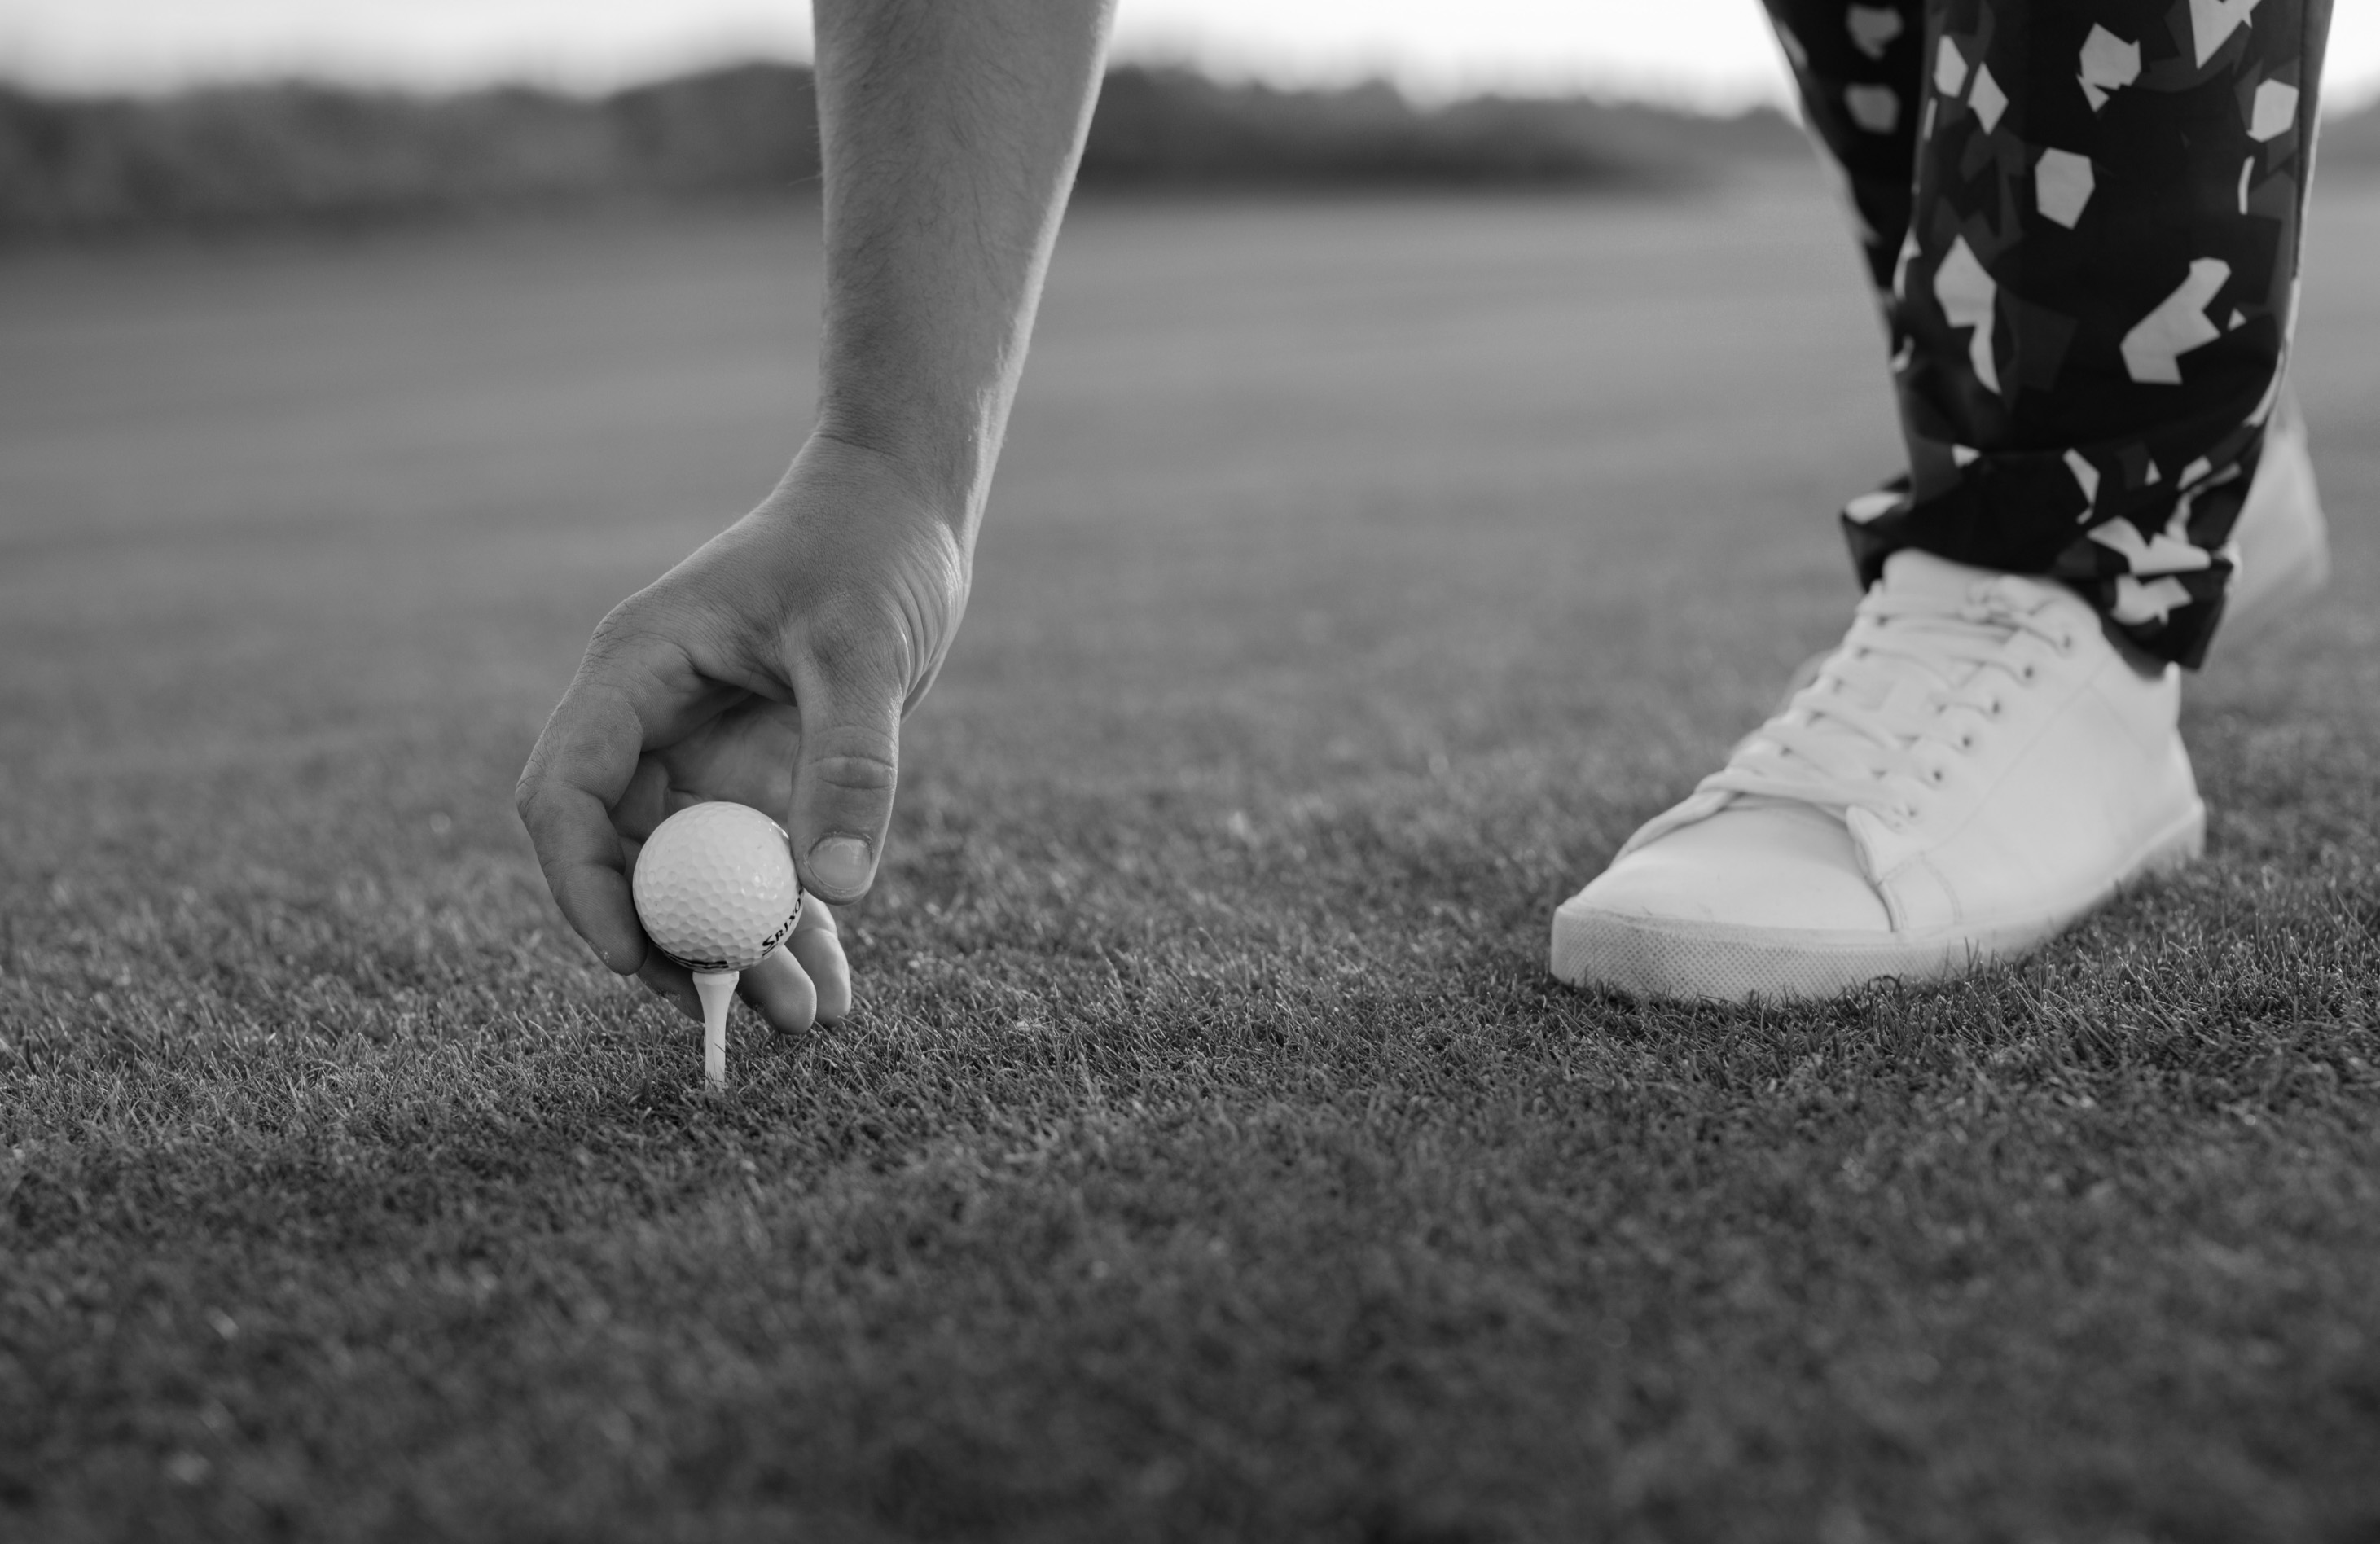 Close-up photo of person placing golf ball on golf tee